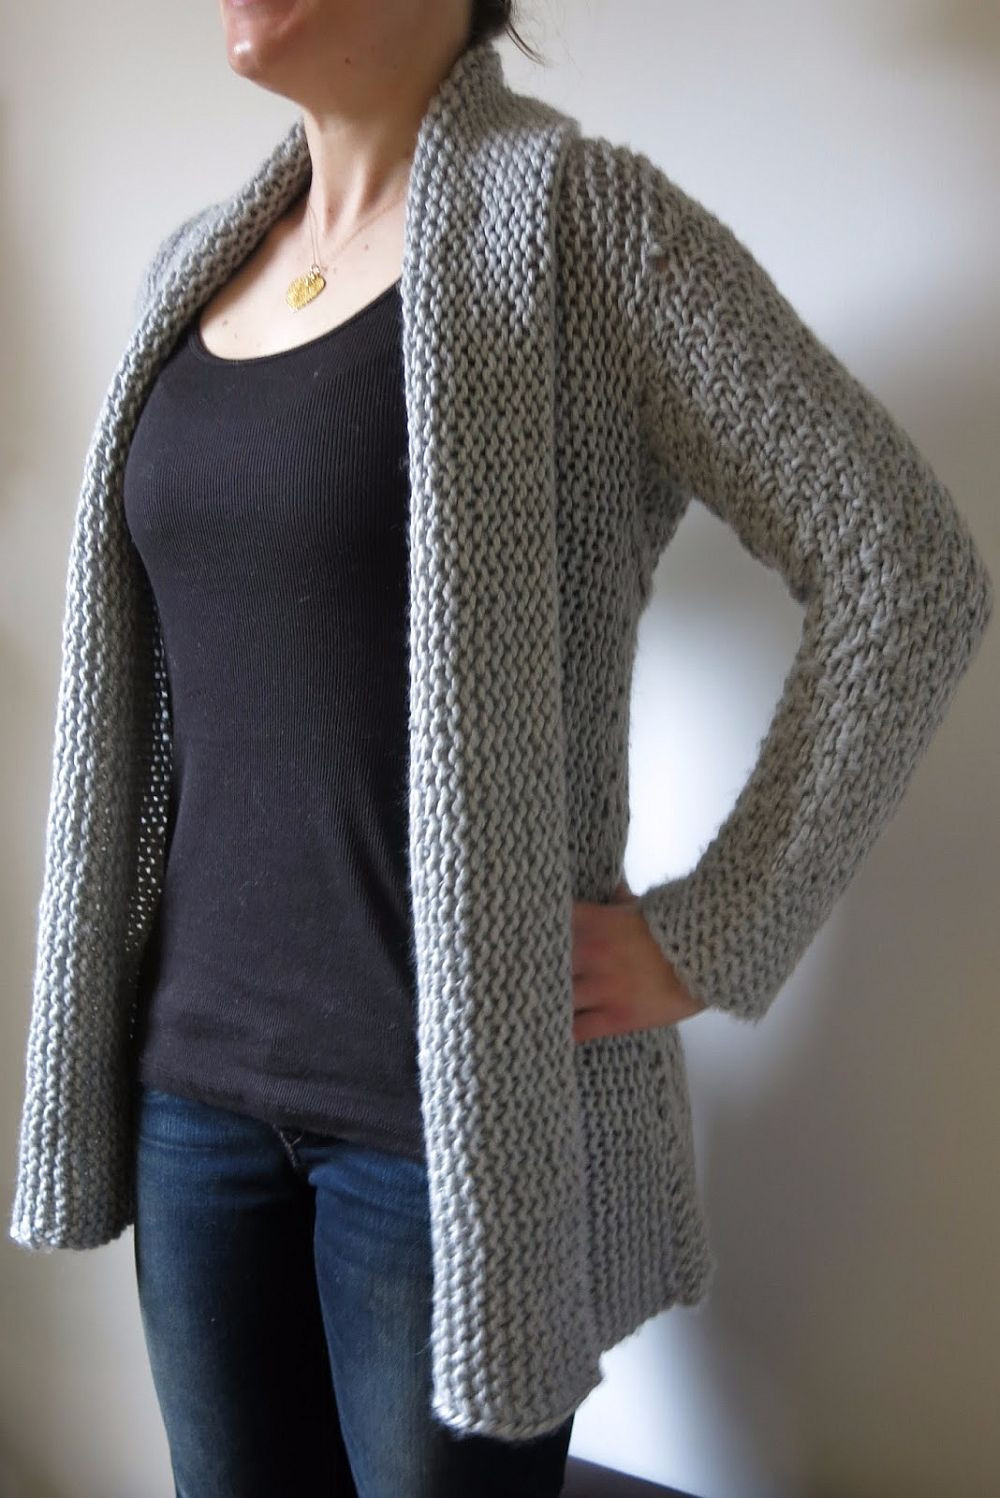 Sweater Knitting Patterns Unique these Knitted Cardigans are the Perfect Way to Update Your Of Amazing 42 Models Sweater Knitting Patterns